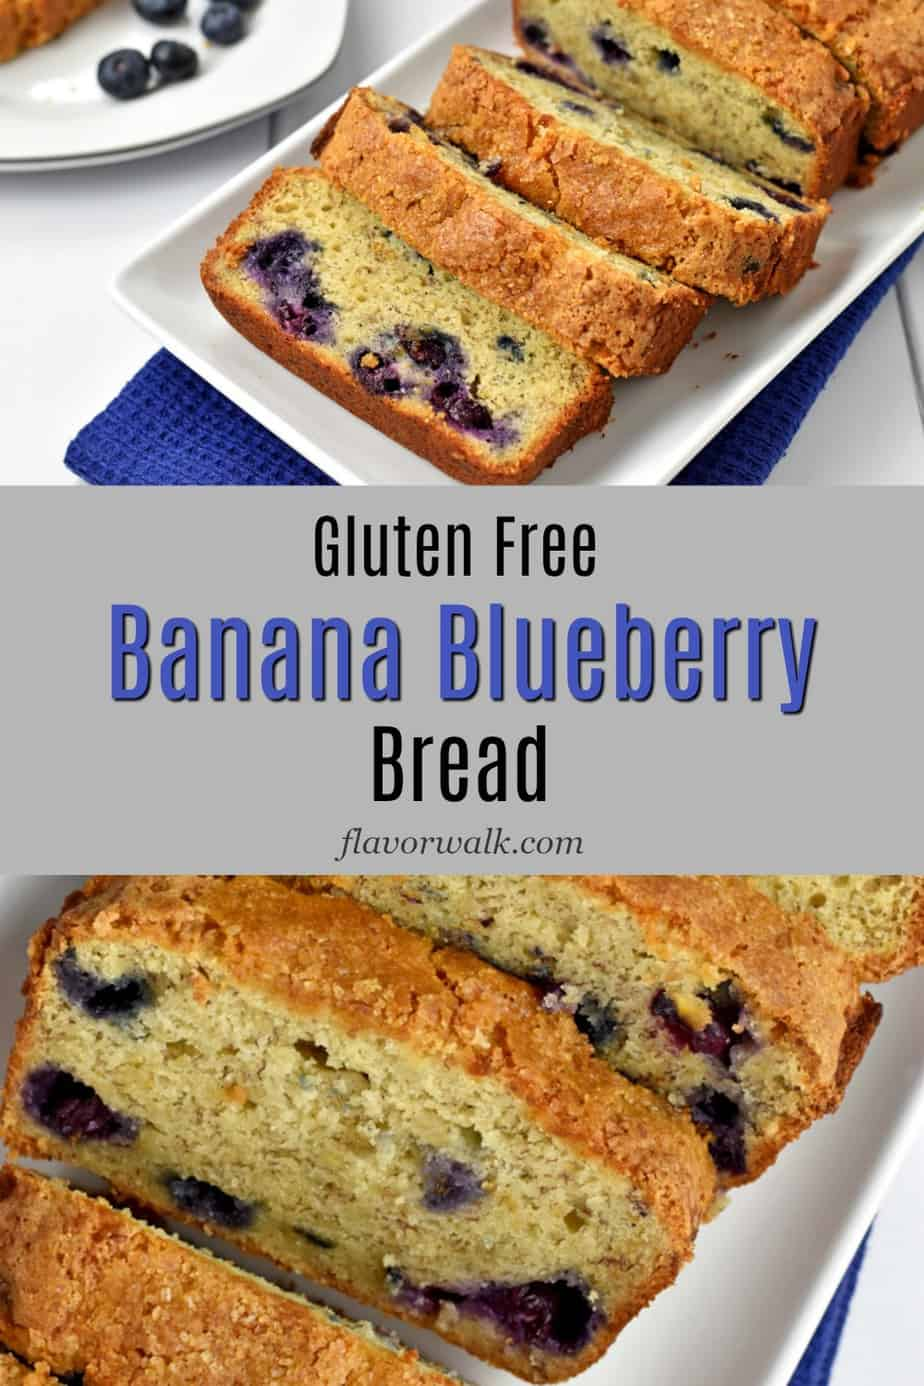 Top image is a sliced loaf of gluten free banana blueberry bread. Middle image is a gray text overlay. Bottom image is an overhead shot of the sliced loaf of gluten free banana blueberry bread.